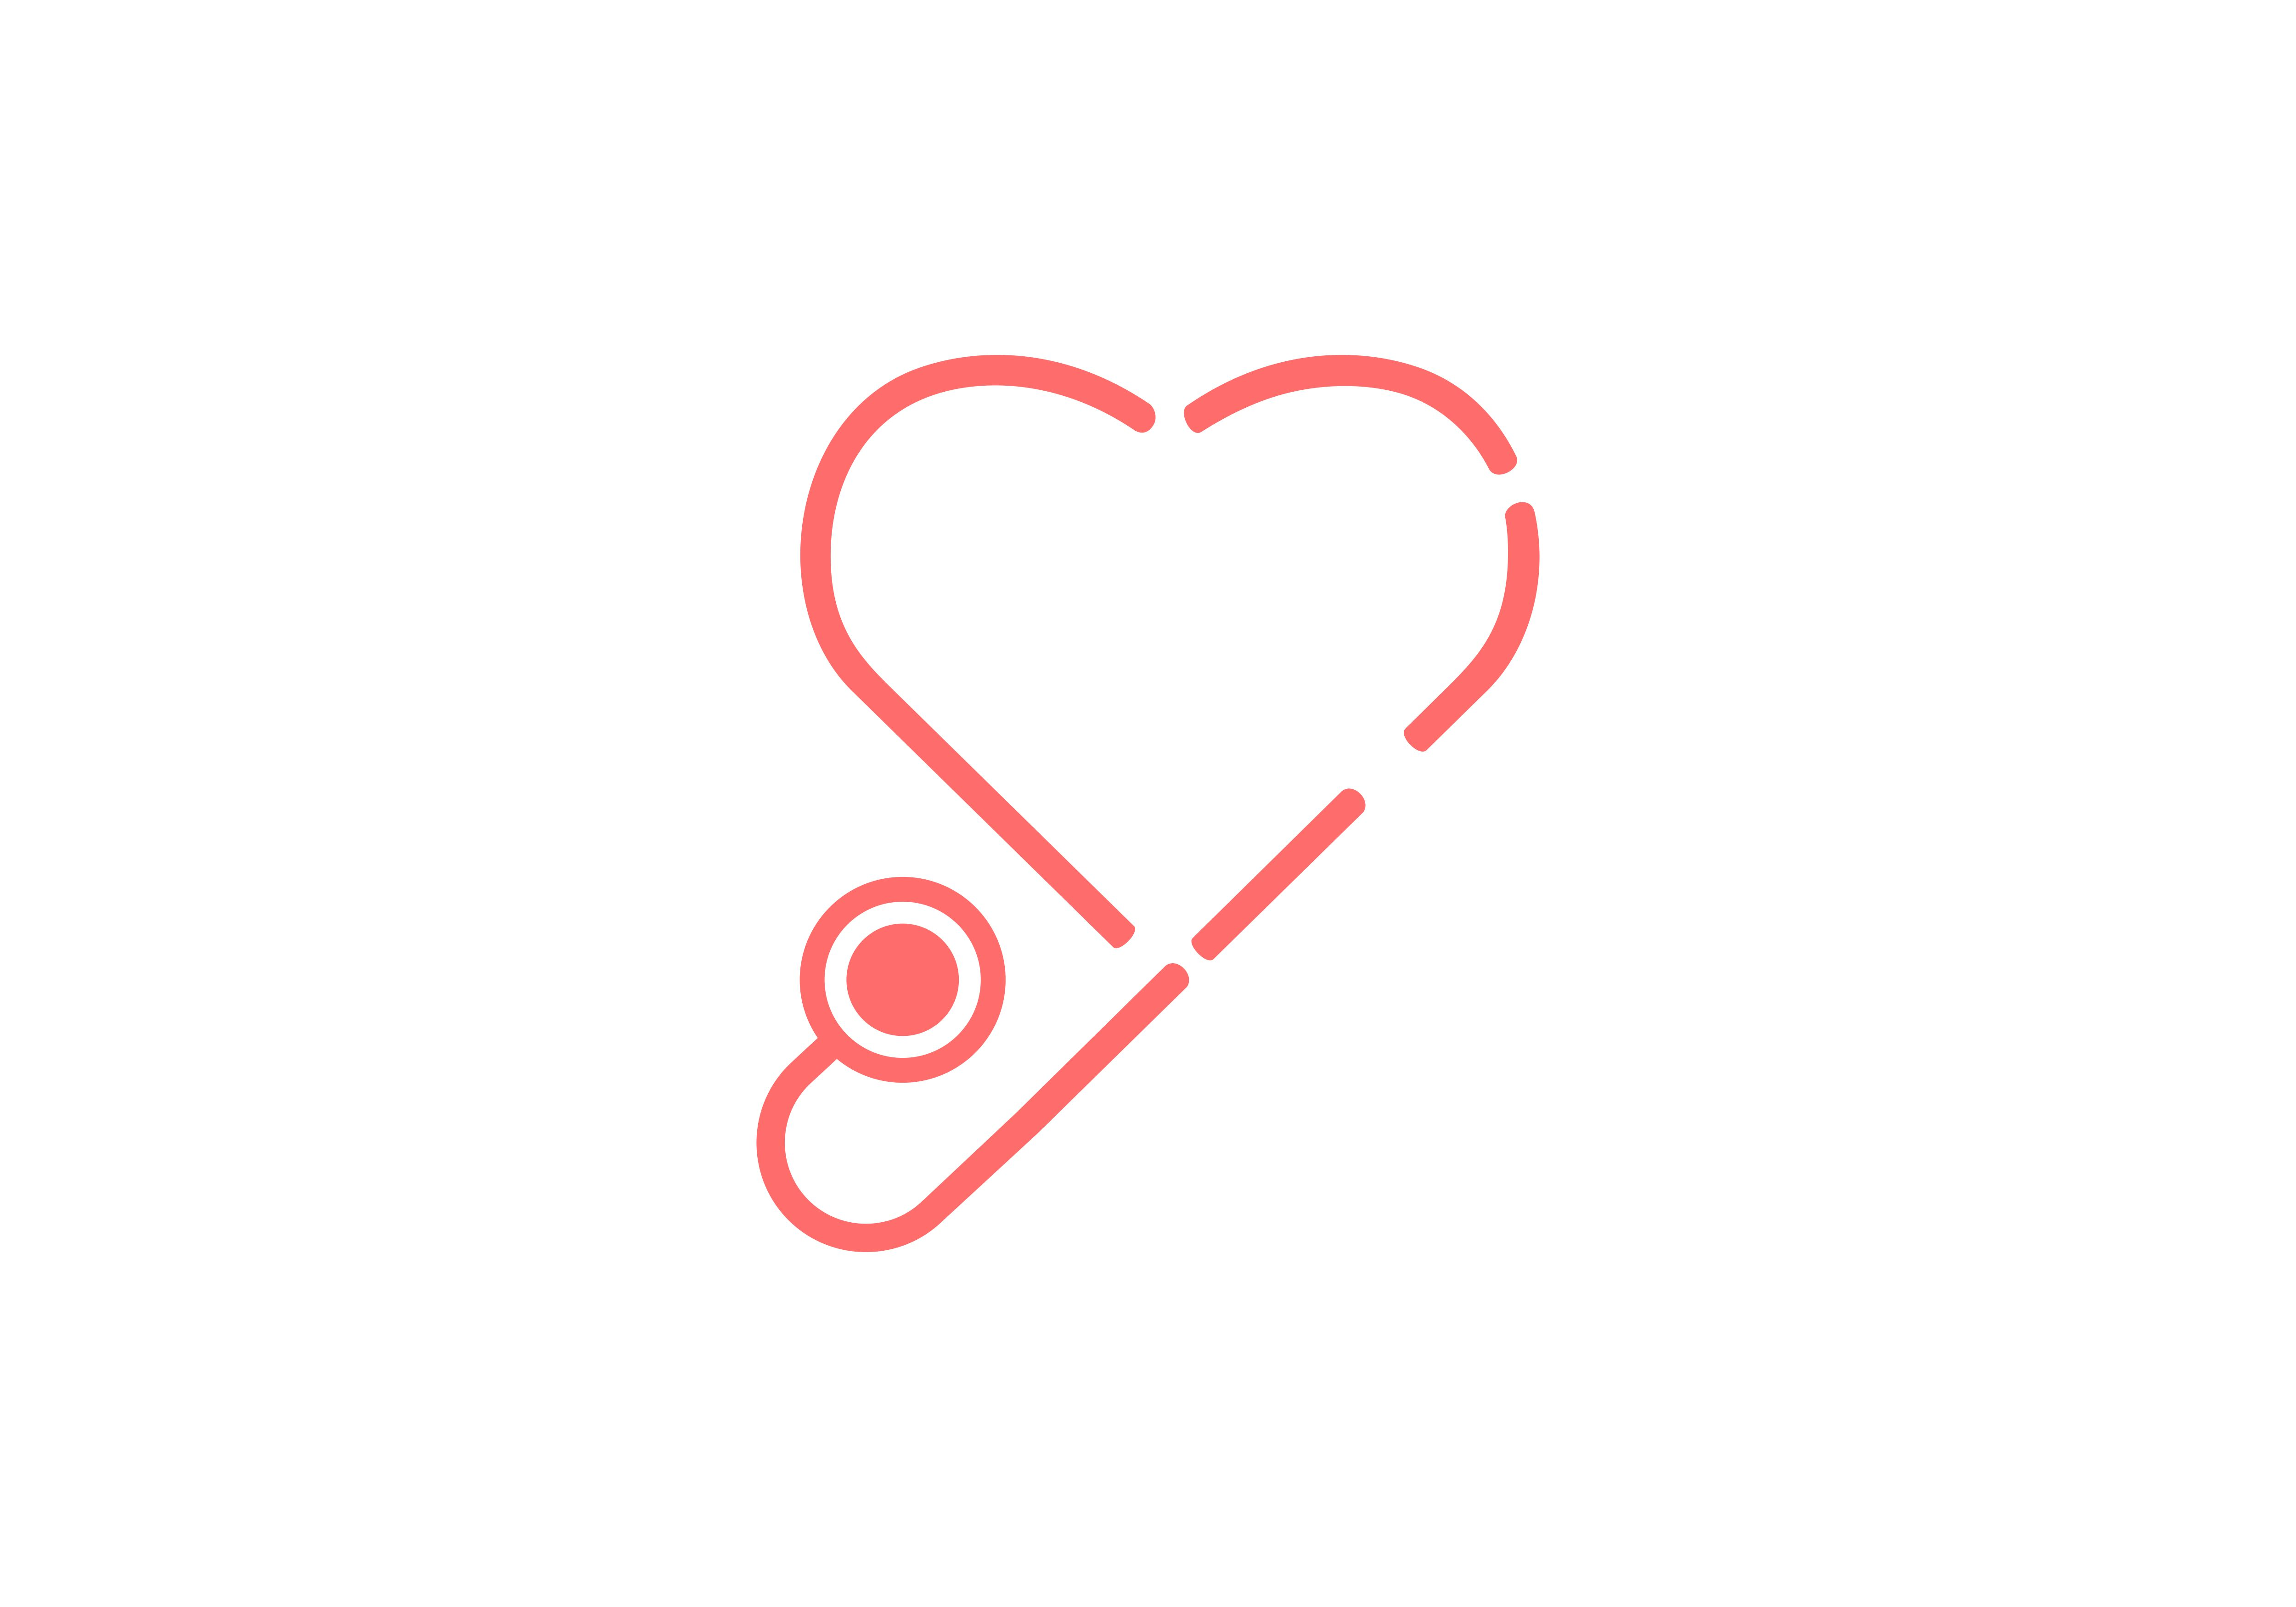 Download Free Stethoscope Heart Medical Logo Graphic By Deemka Studio for Cricut Explore, Silhouette and other cutting machines.